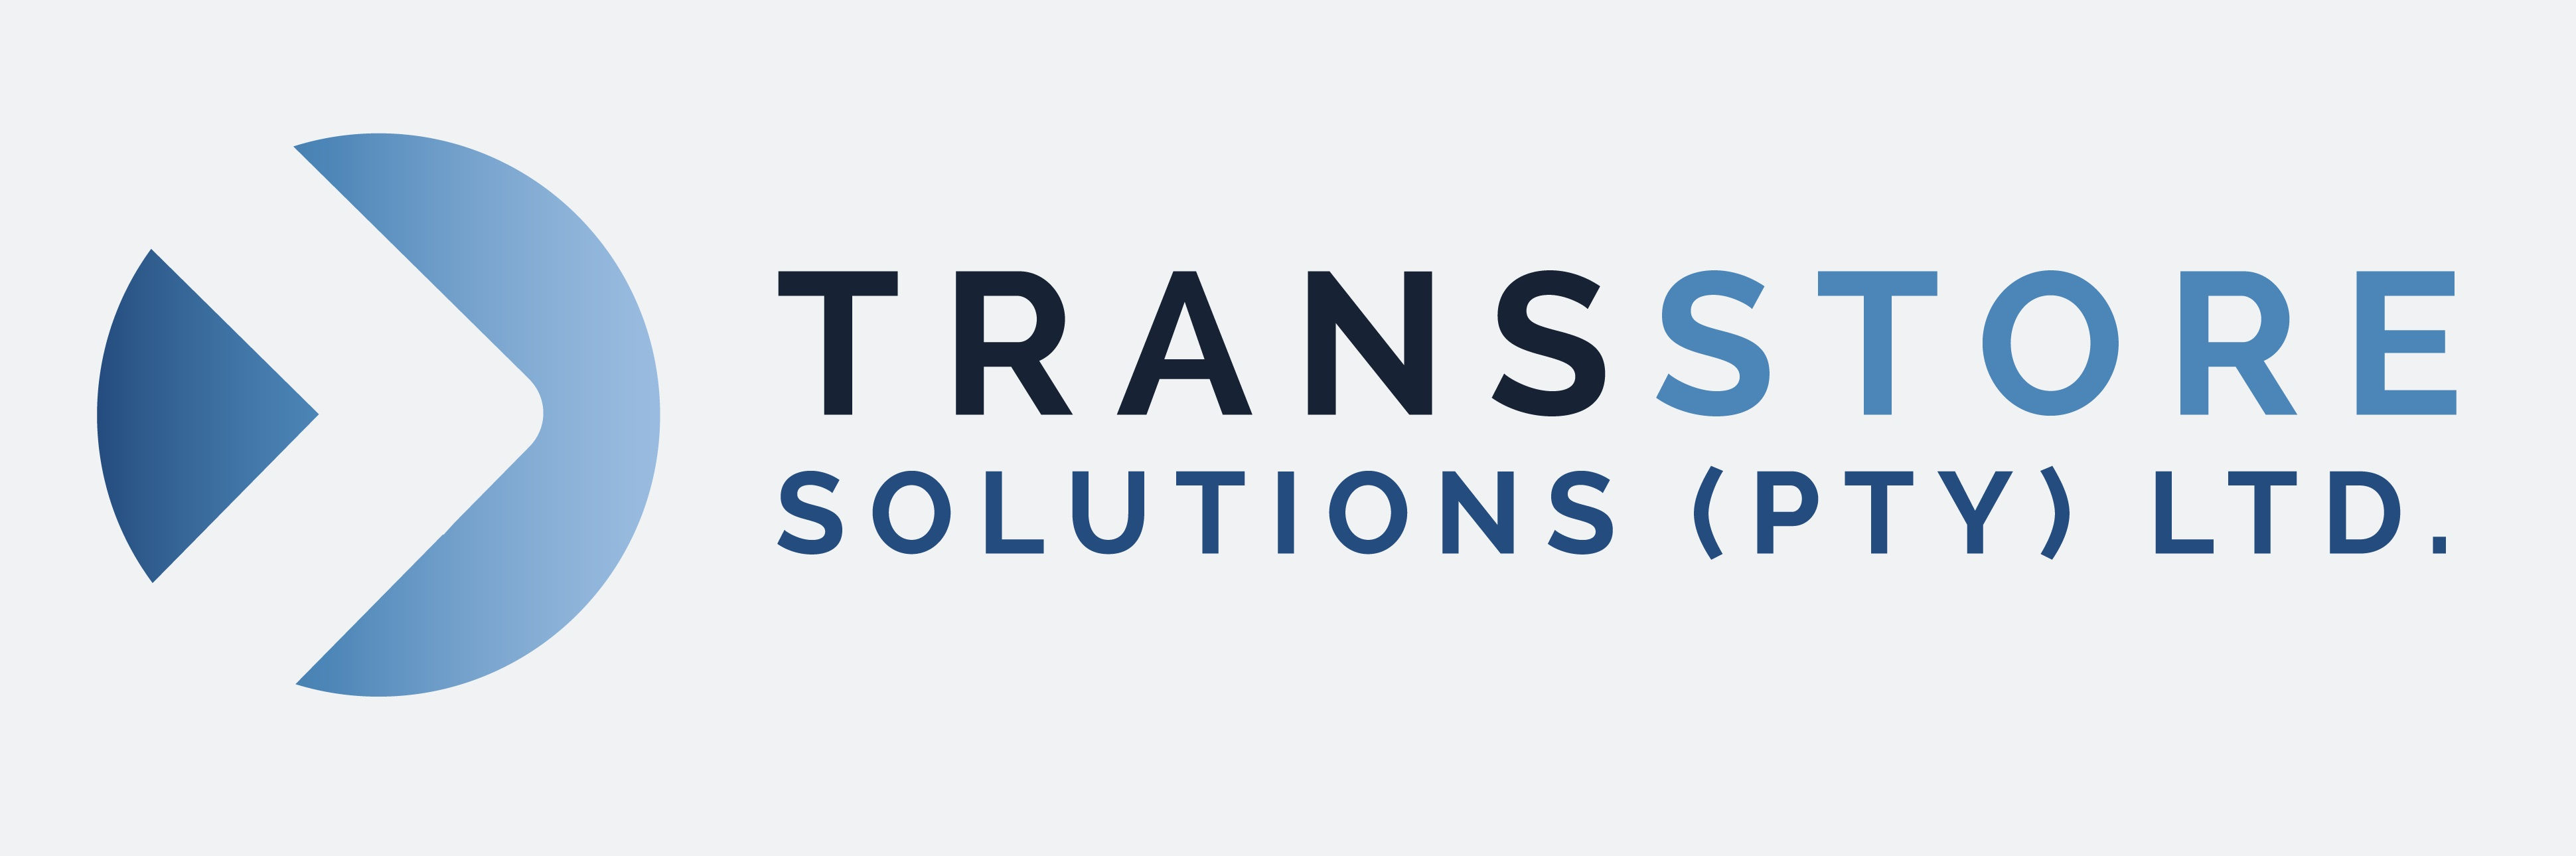 Transstore Solutions